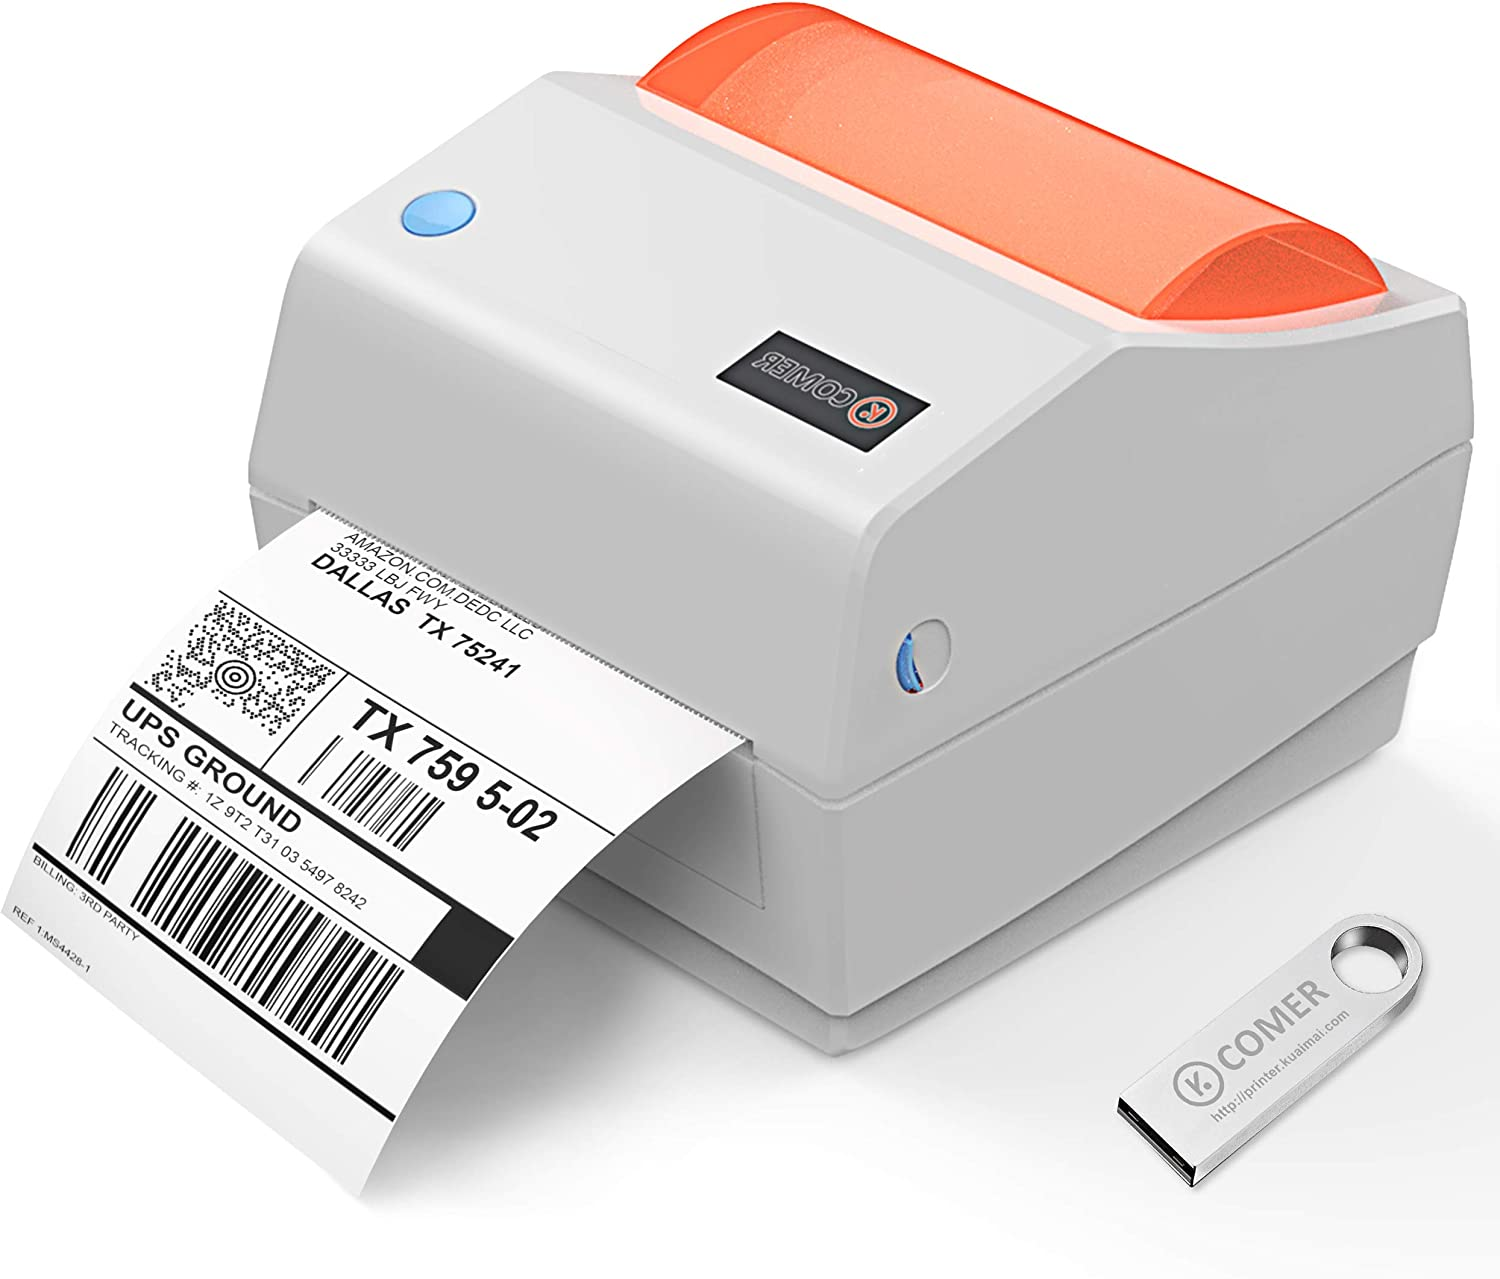 Comer Shipping Label Printer 4×6 -Commercial Direct Thermal Printer High Speed Barcode Label Maker Machine Compatible with Windows & Mac for Warehouse Ebay Amazon USPS FedEx DHL